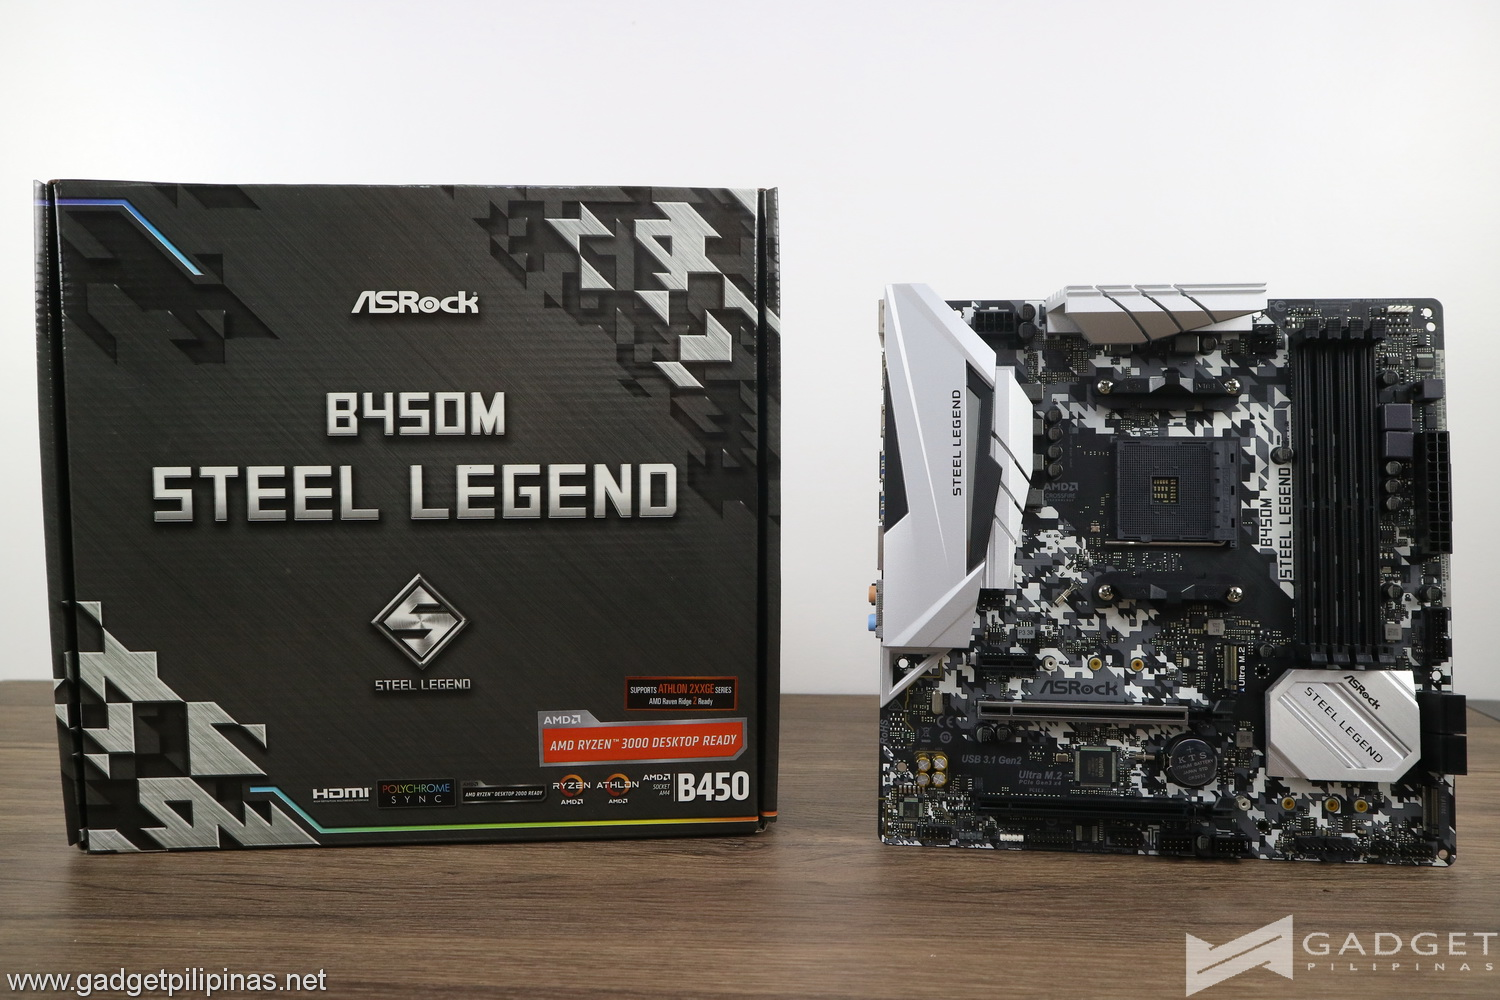 Php 50k Gaming PC Build Guide 2021 Philippines - 11